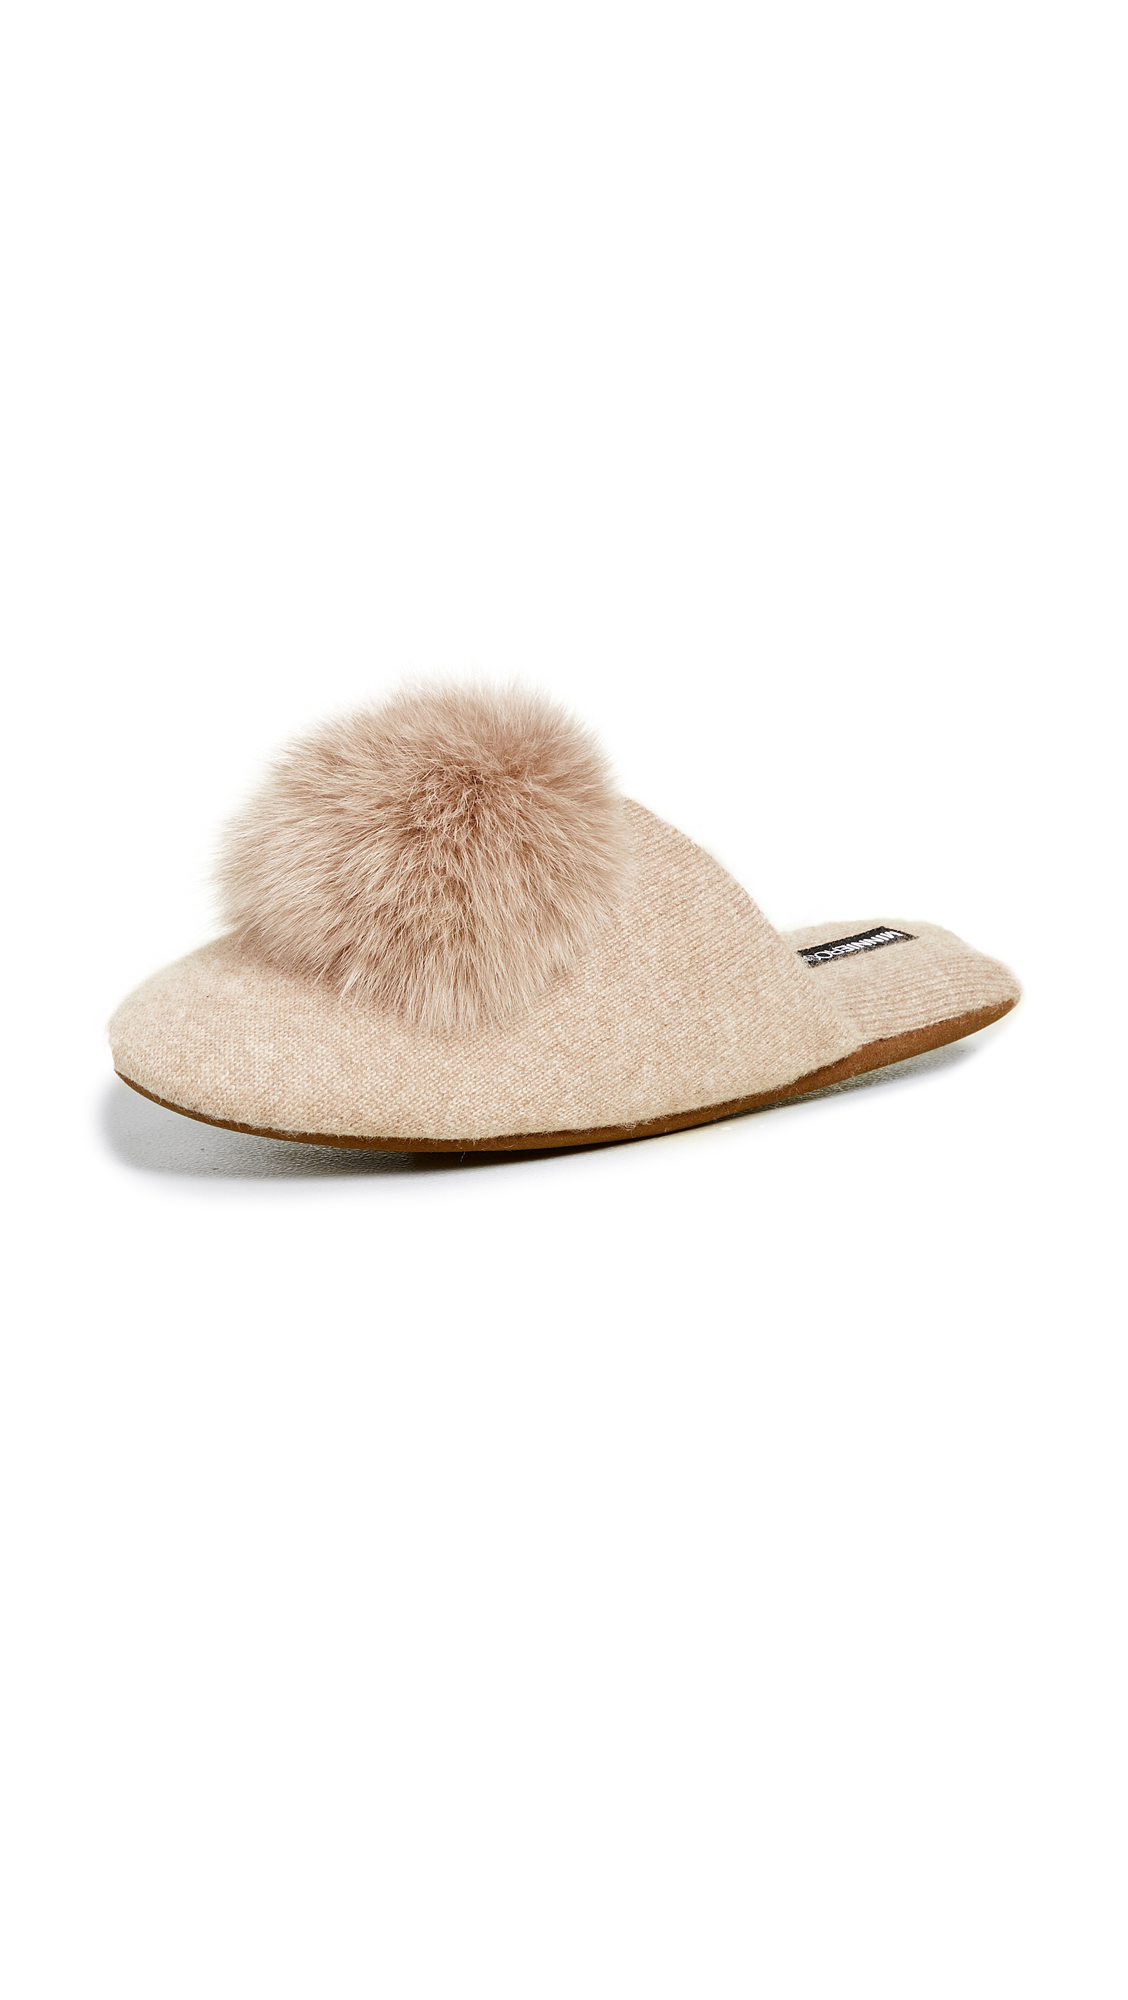 Minnie Rose Cashmere Pom Pom Slippers - Camel